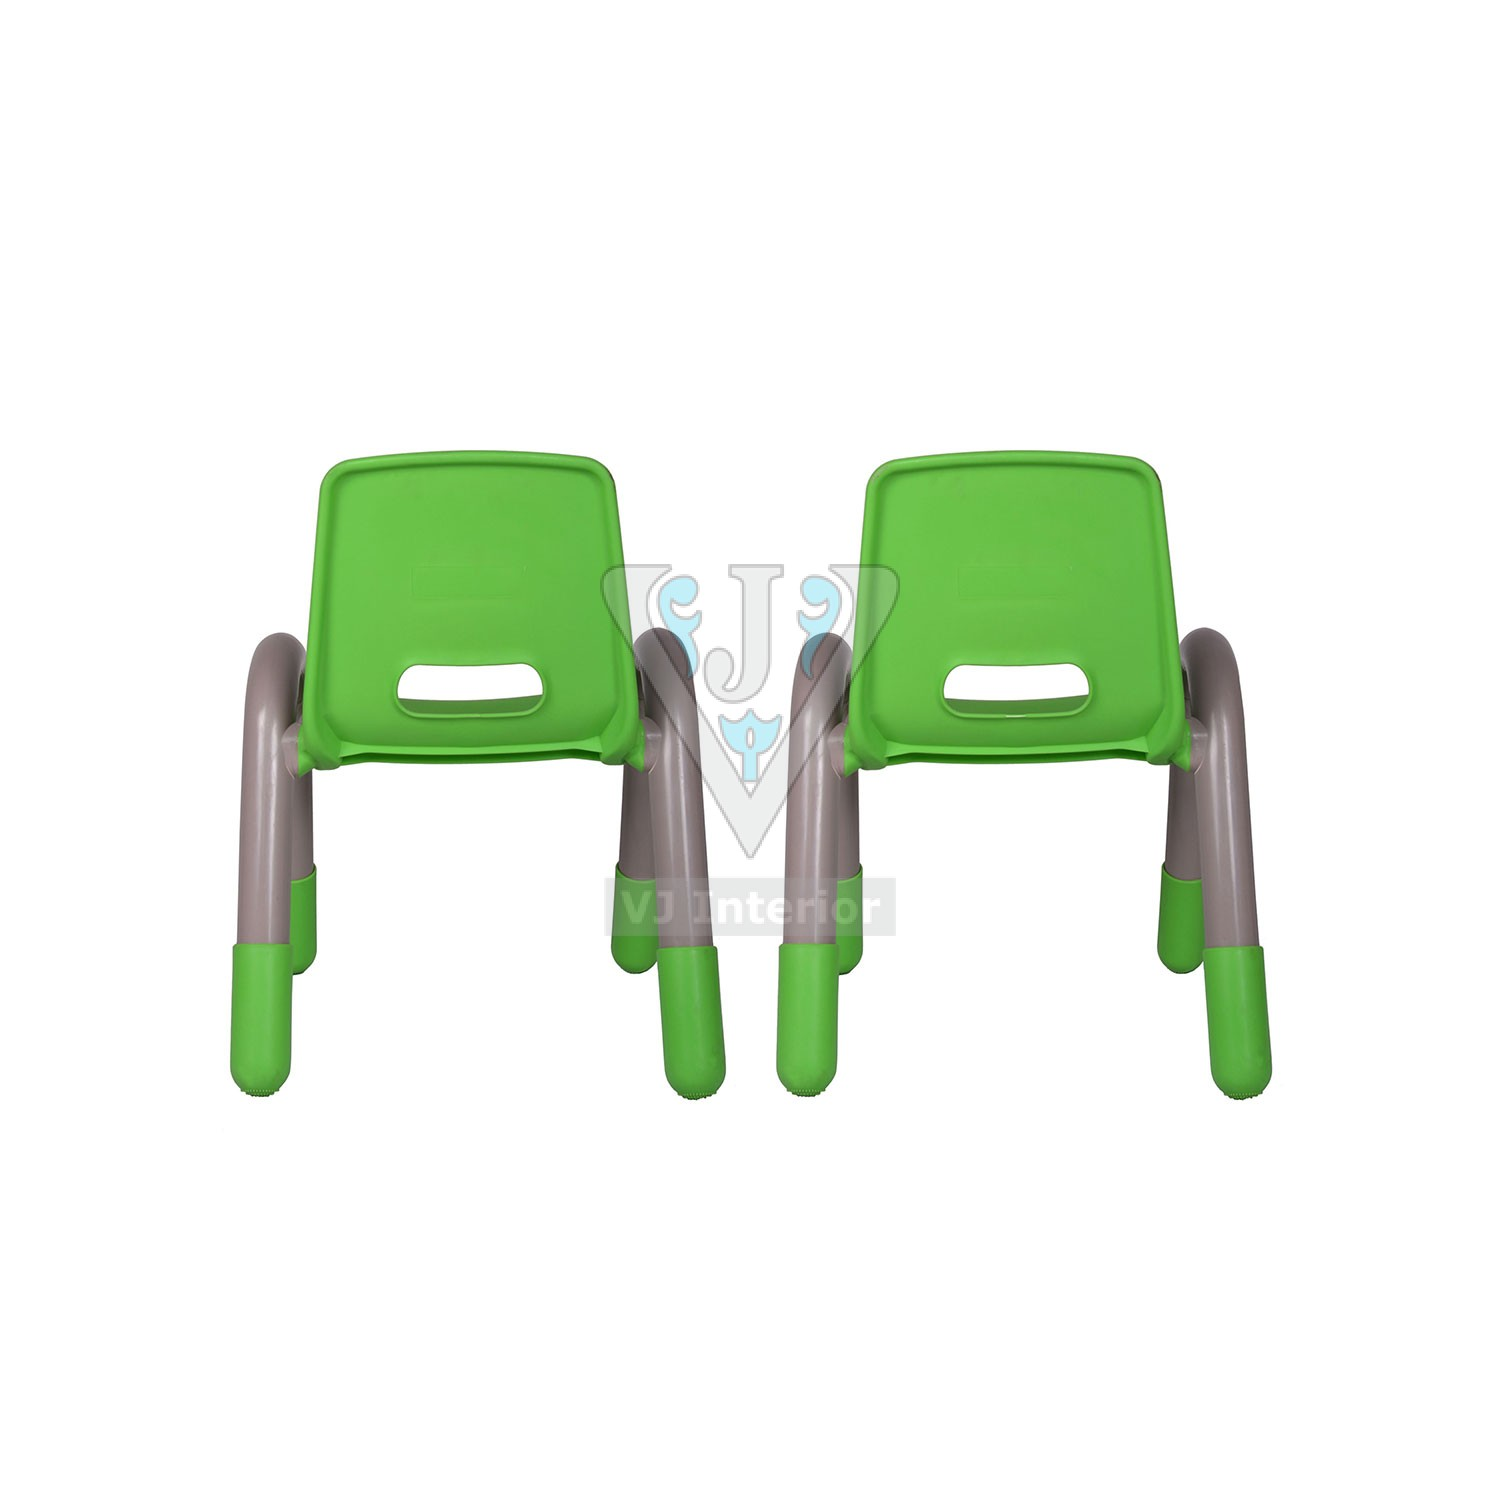 The Volver Engineering Plastic Kids Chair Green Vj Interior